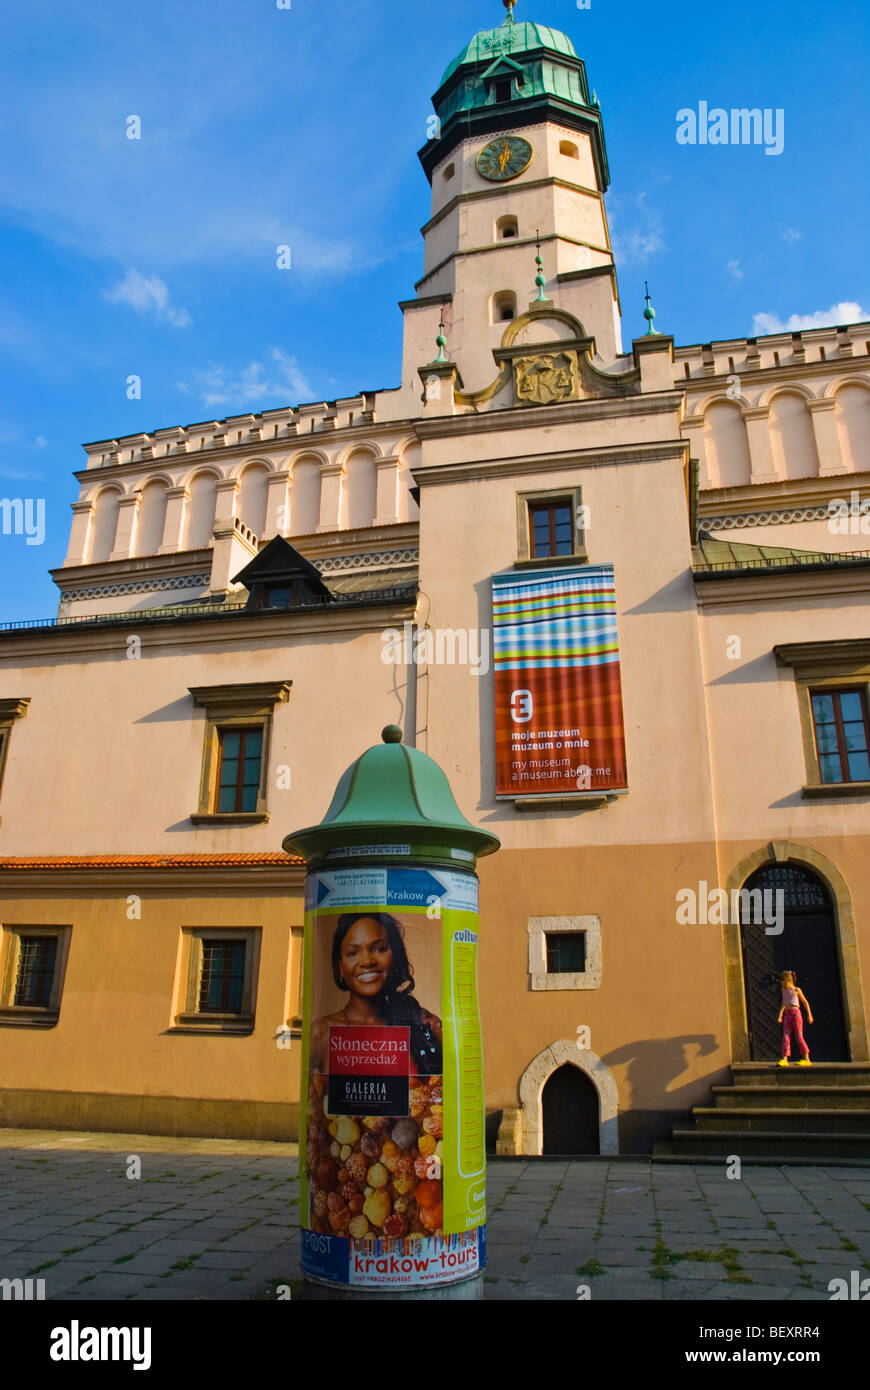 Kazimierz old town hall now houses the Ethnographic museum in Krakow Poland Europe - Stock Image